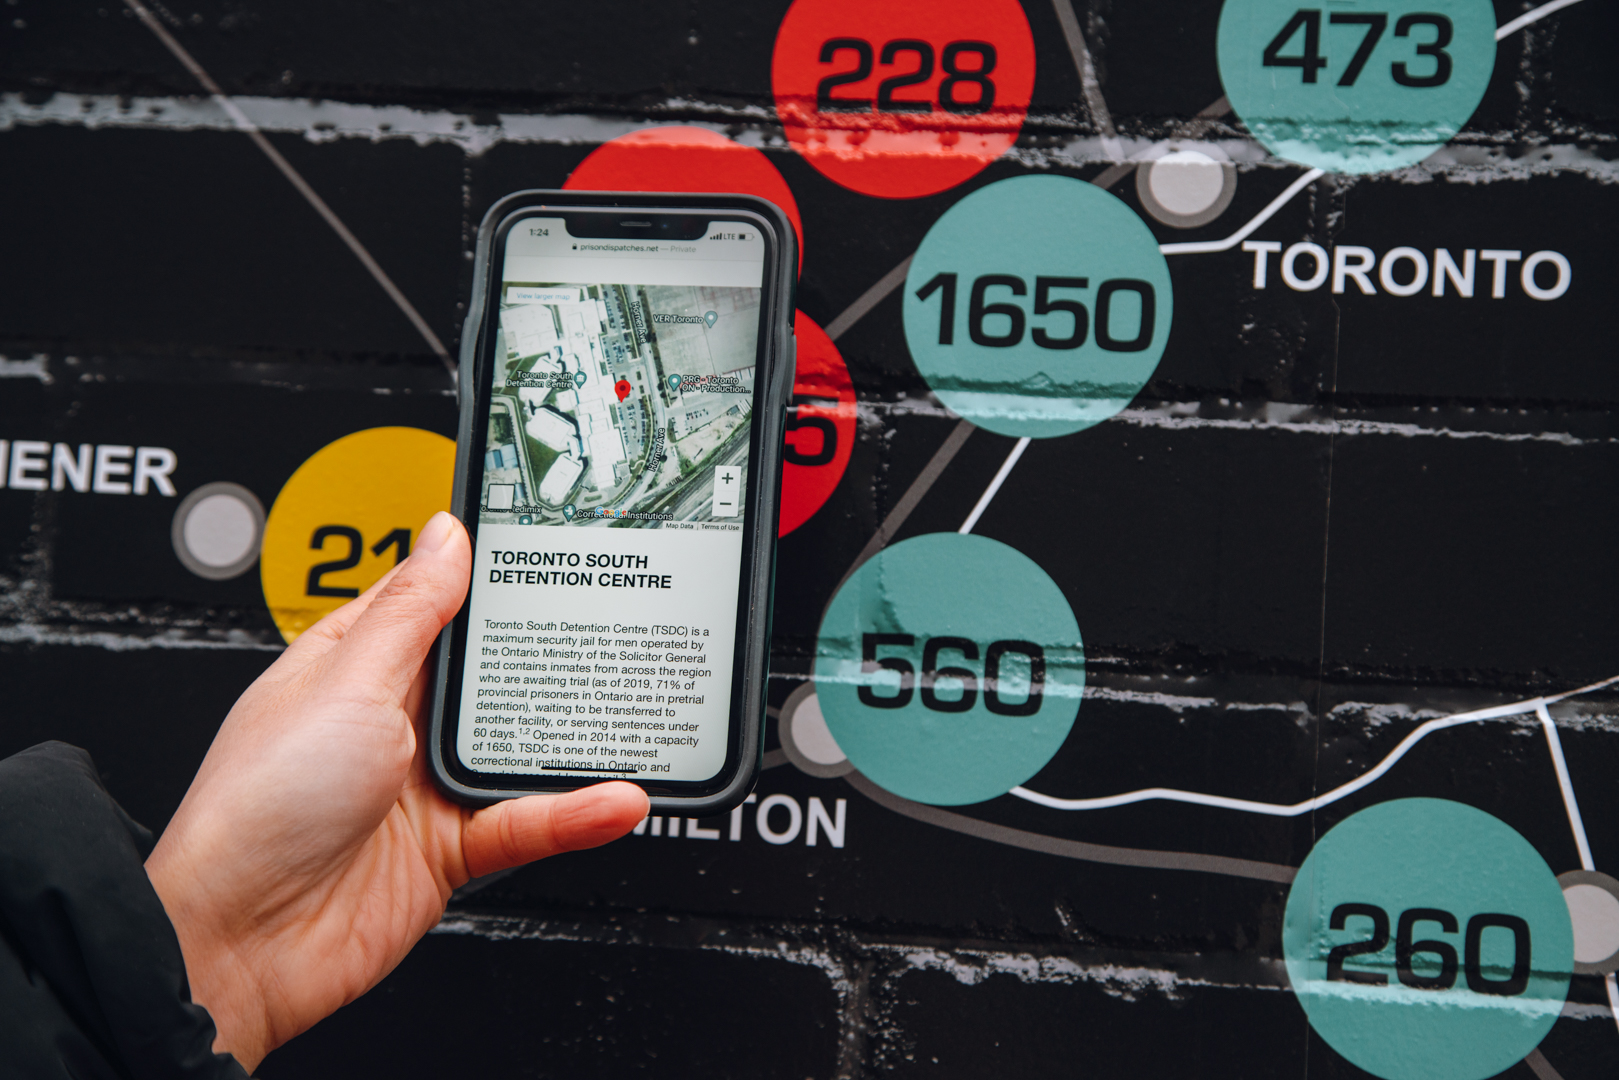 A cellphone with text explaining the Toronto South Detention Centre is help up to a map dispalying where the centre is located